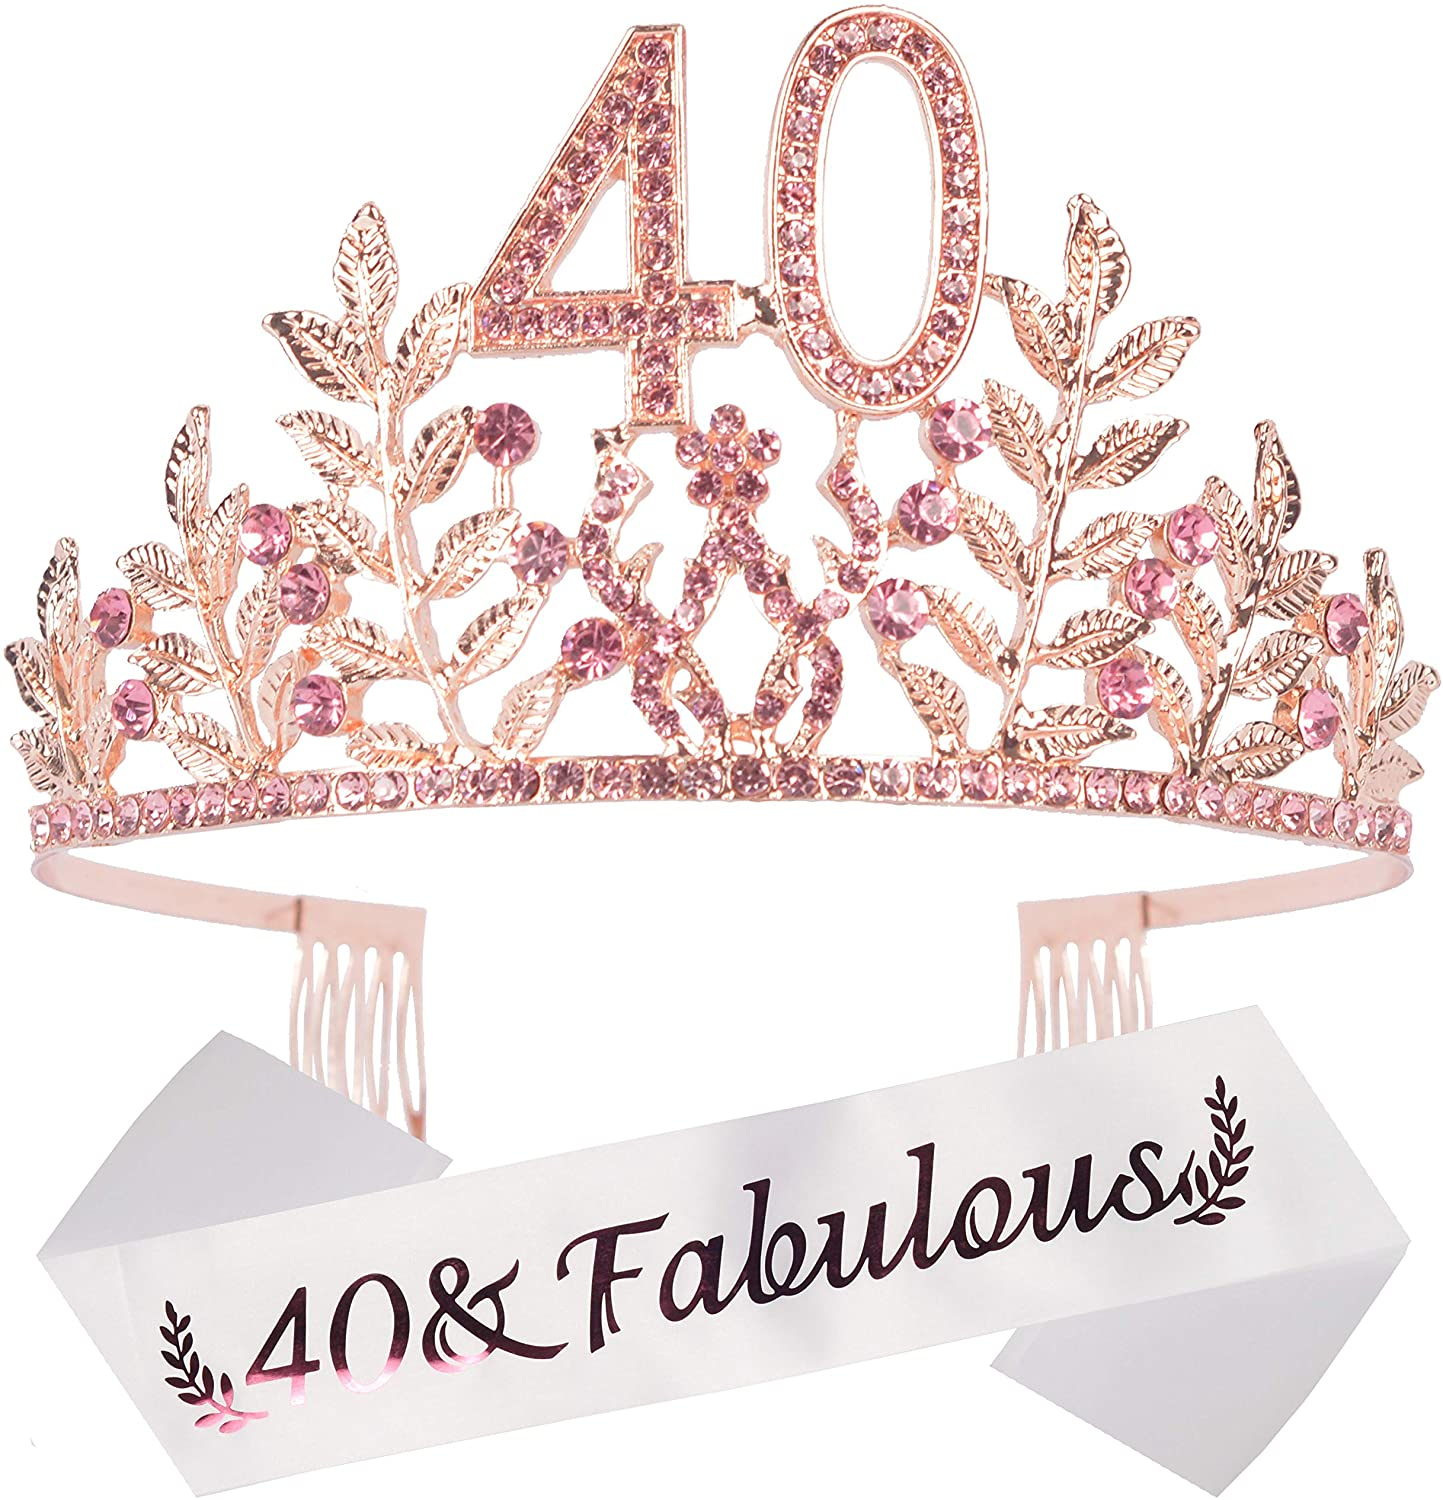 40th Birthday Party Decorations Supplies, 40th Birthday Gifts, 40th Birthday Tiara and Sash, 40th Happy Birthday, 40 & Fabulous Pink Satin Sash, Happy 40th Birthday Party Supply, It's my 40th Birthday